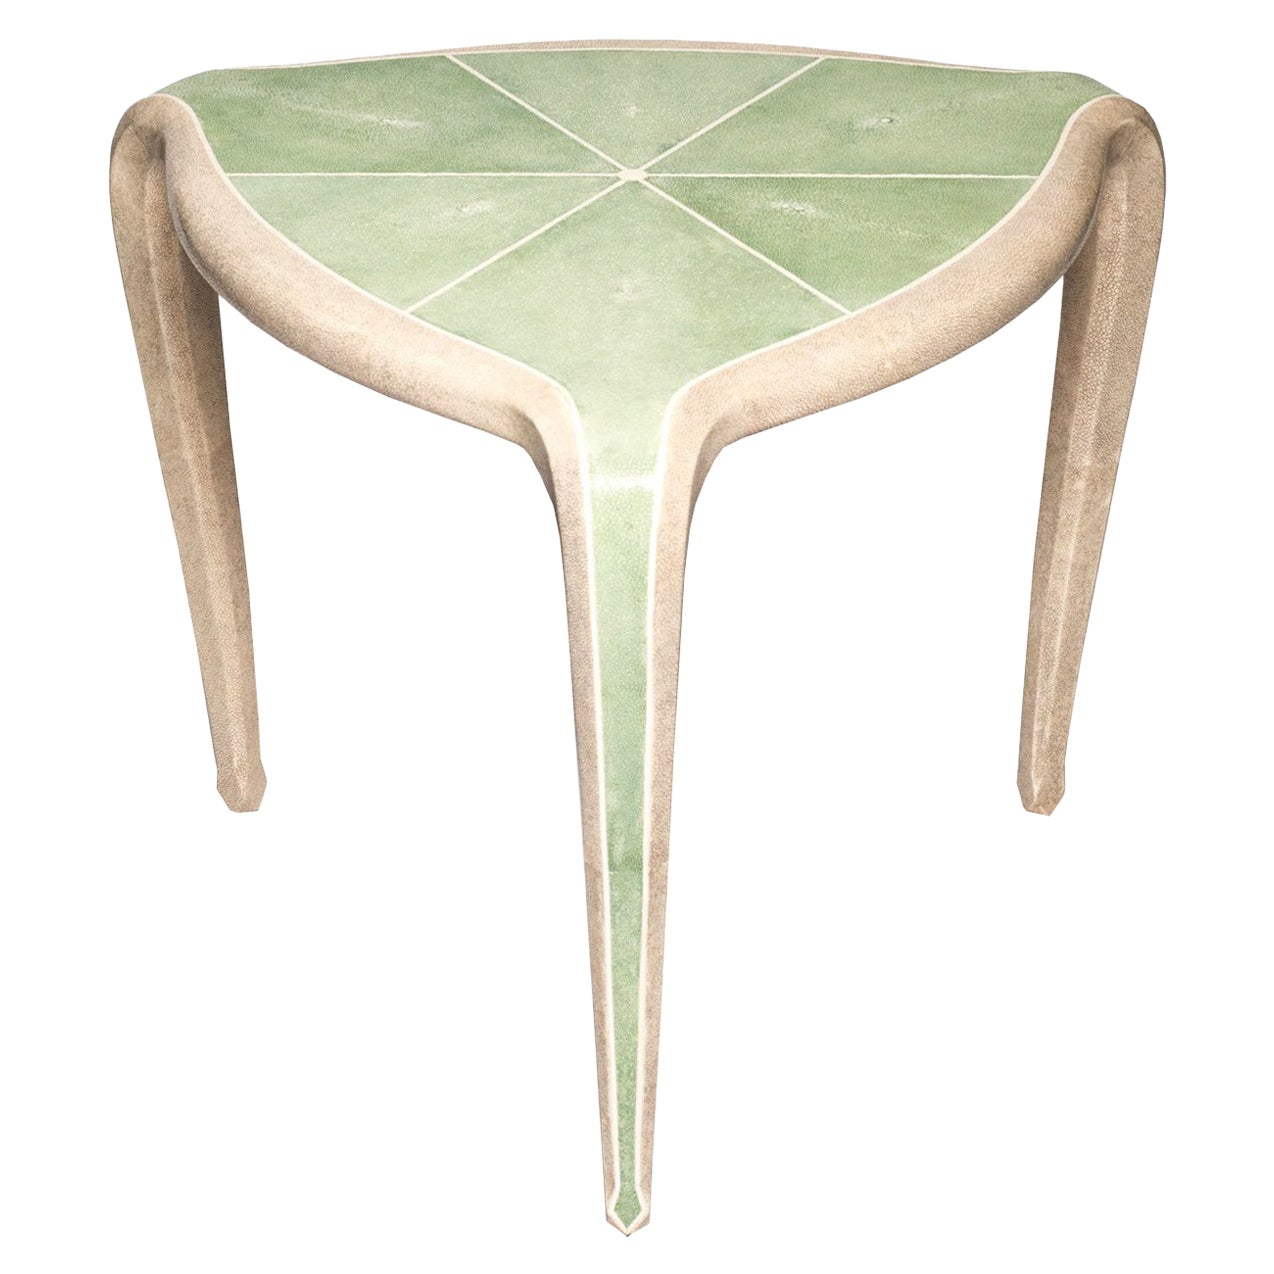 Contemporary Authentic Shagreen Tripod Table in Celadon Green